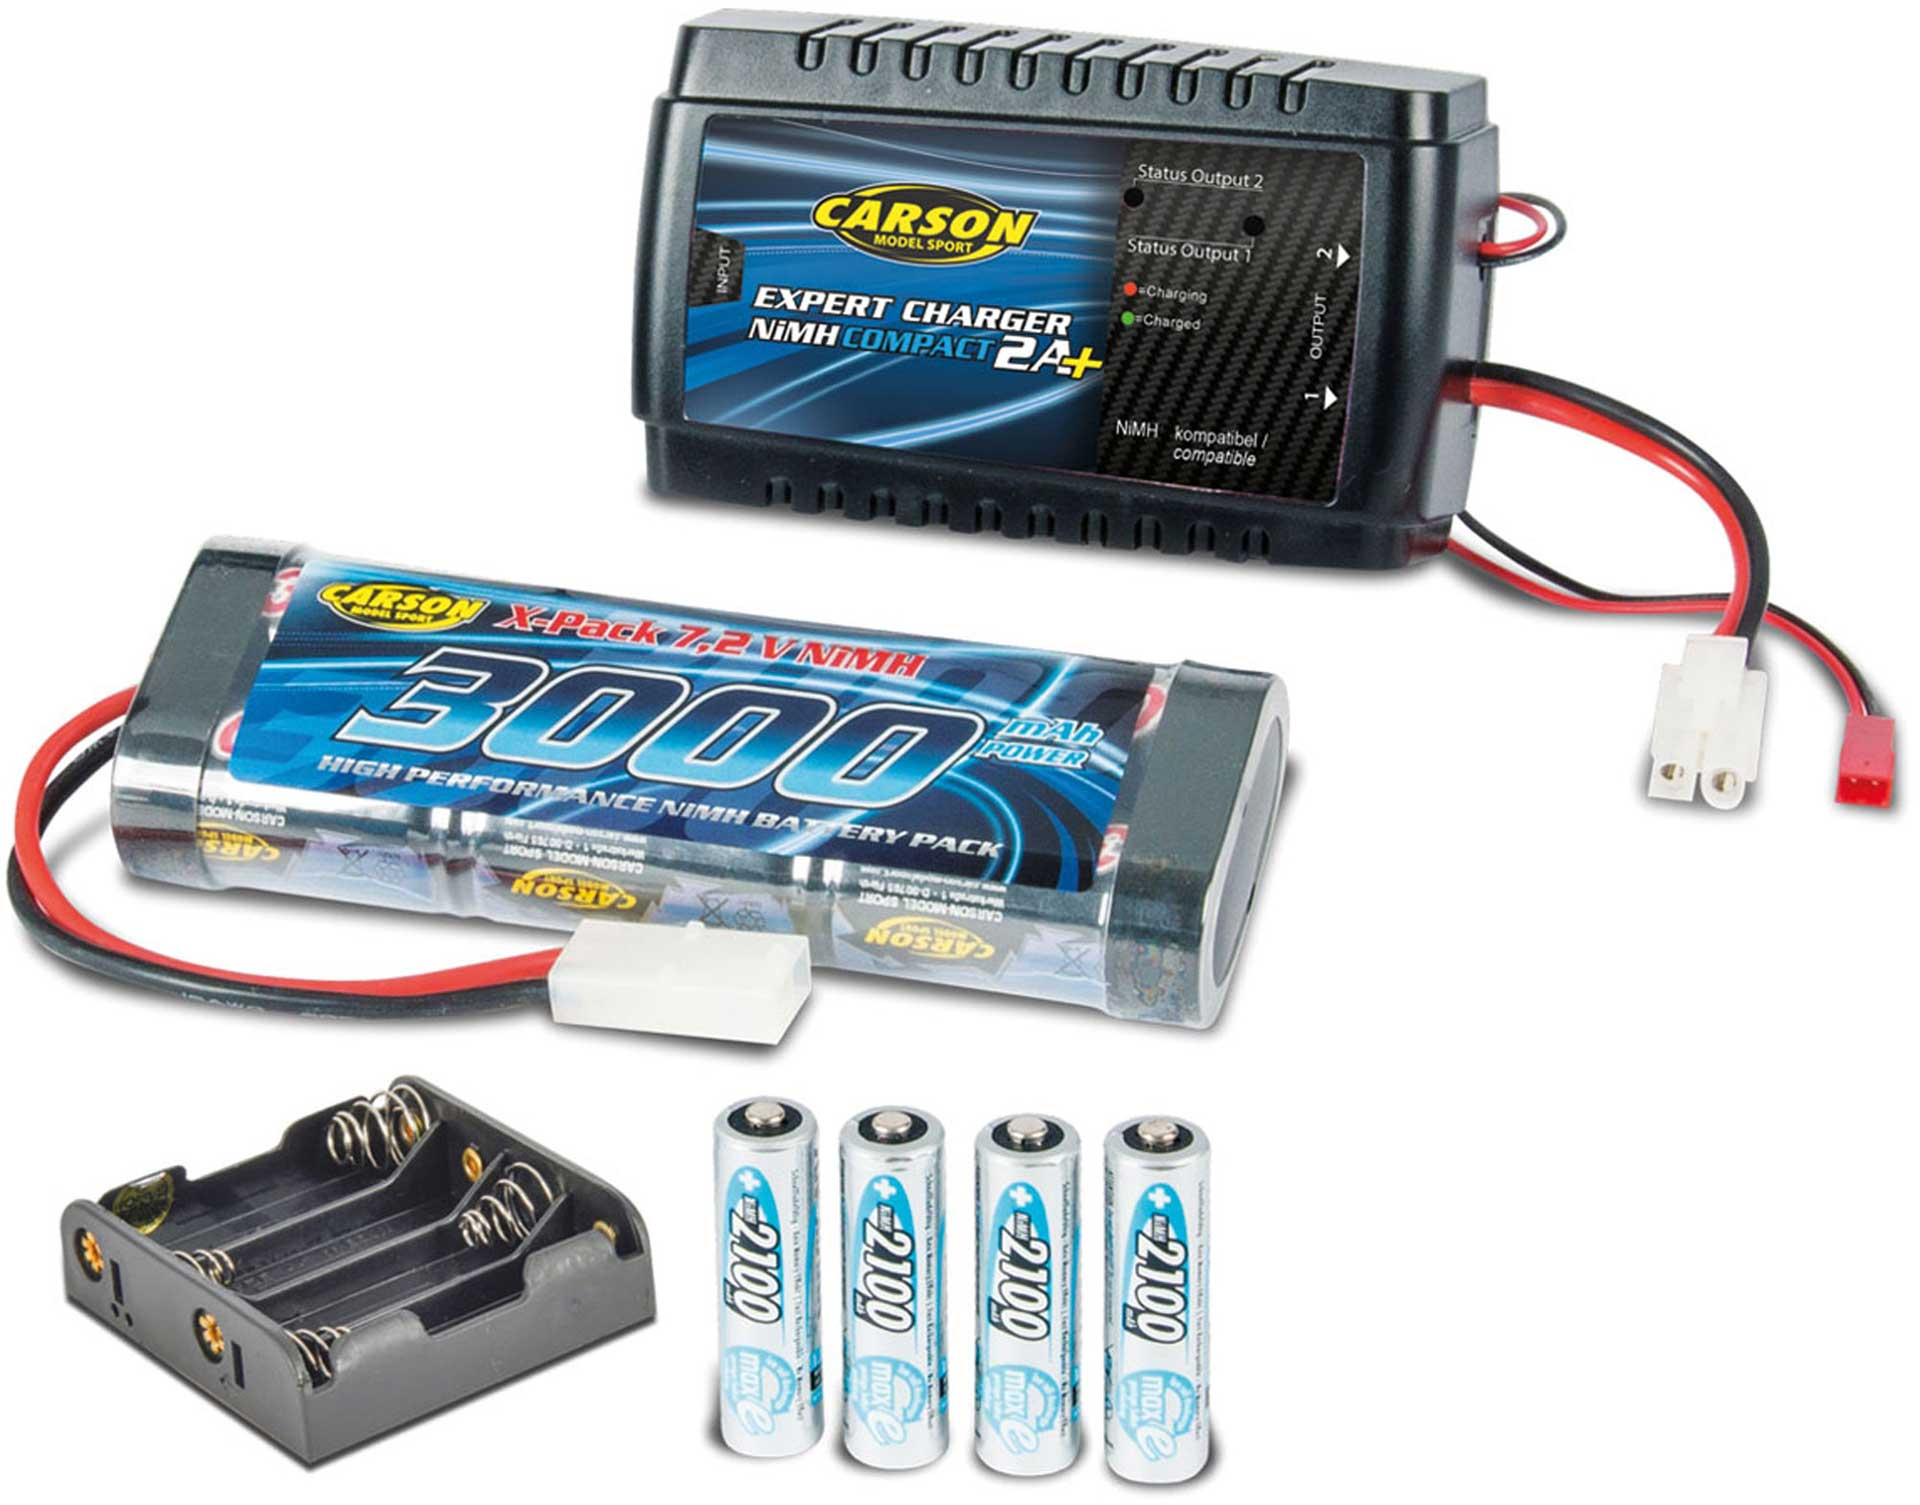 CARSON EXPERT CHARGER CAR & RADIO LADE SET